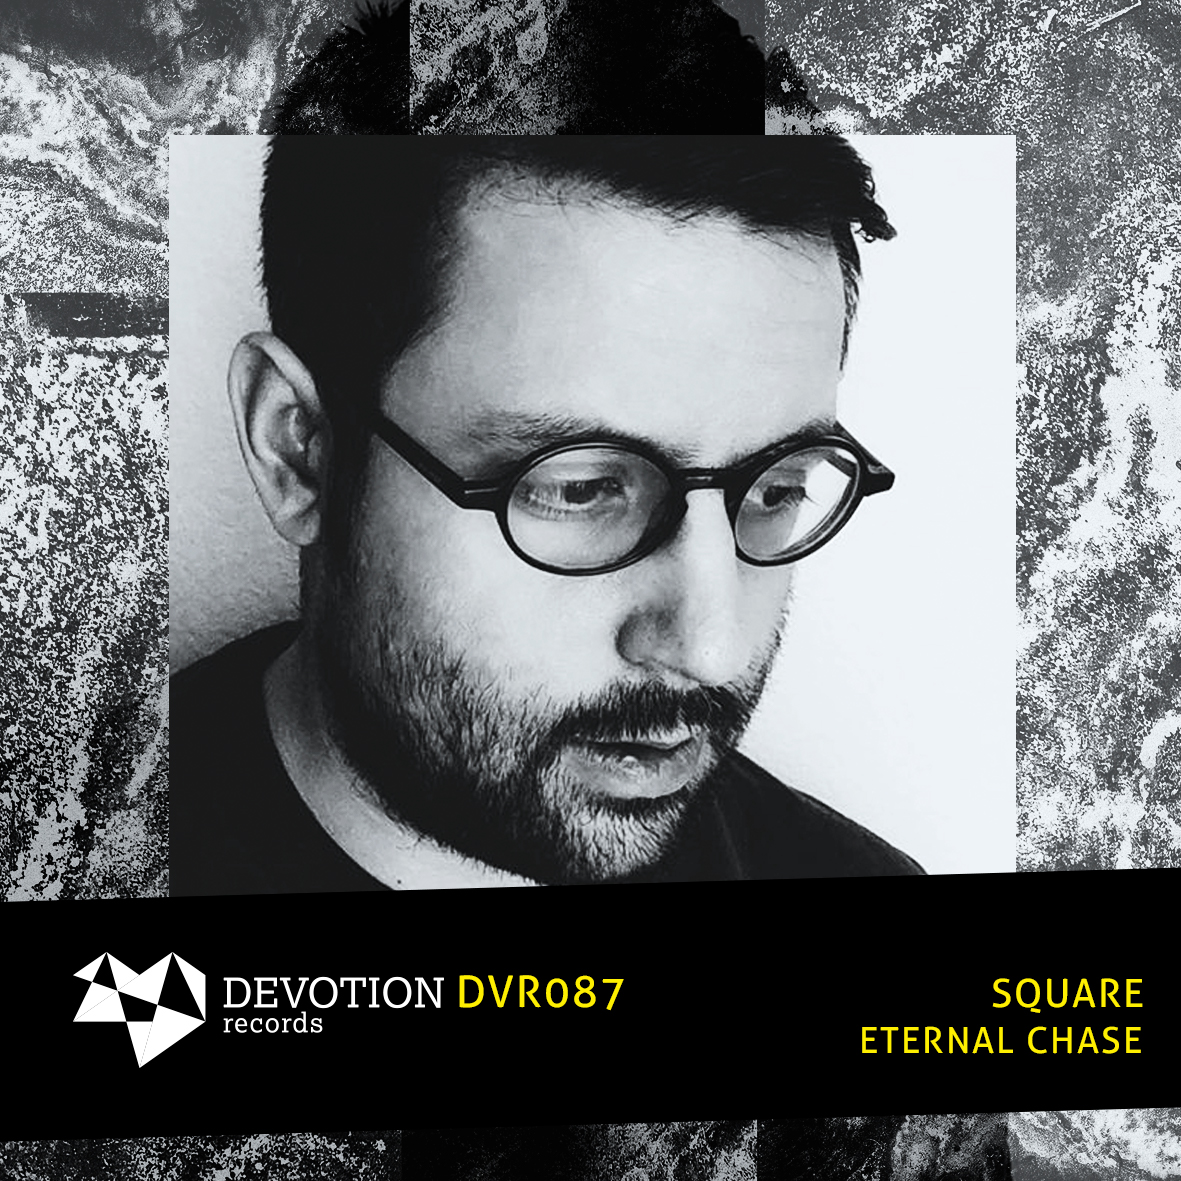 The exceedingly talented producer Eternal Chase started producing in 2011, and had been enjoying the journey, while improving his skill, ever since. We had been with an eye on his great dark, hypnotic and atmospheric techno; and we are happy to welcome him on Devotion Records. https://t.co/bzFYHLcpMg